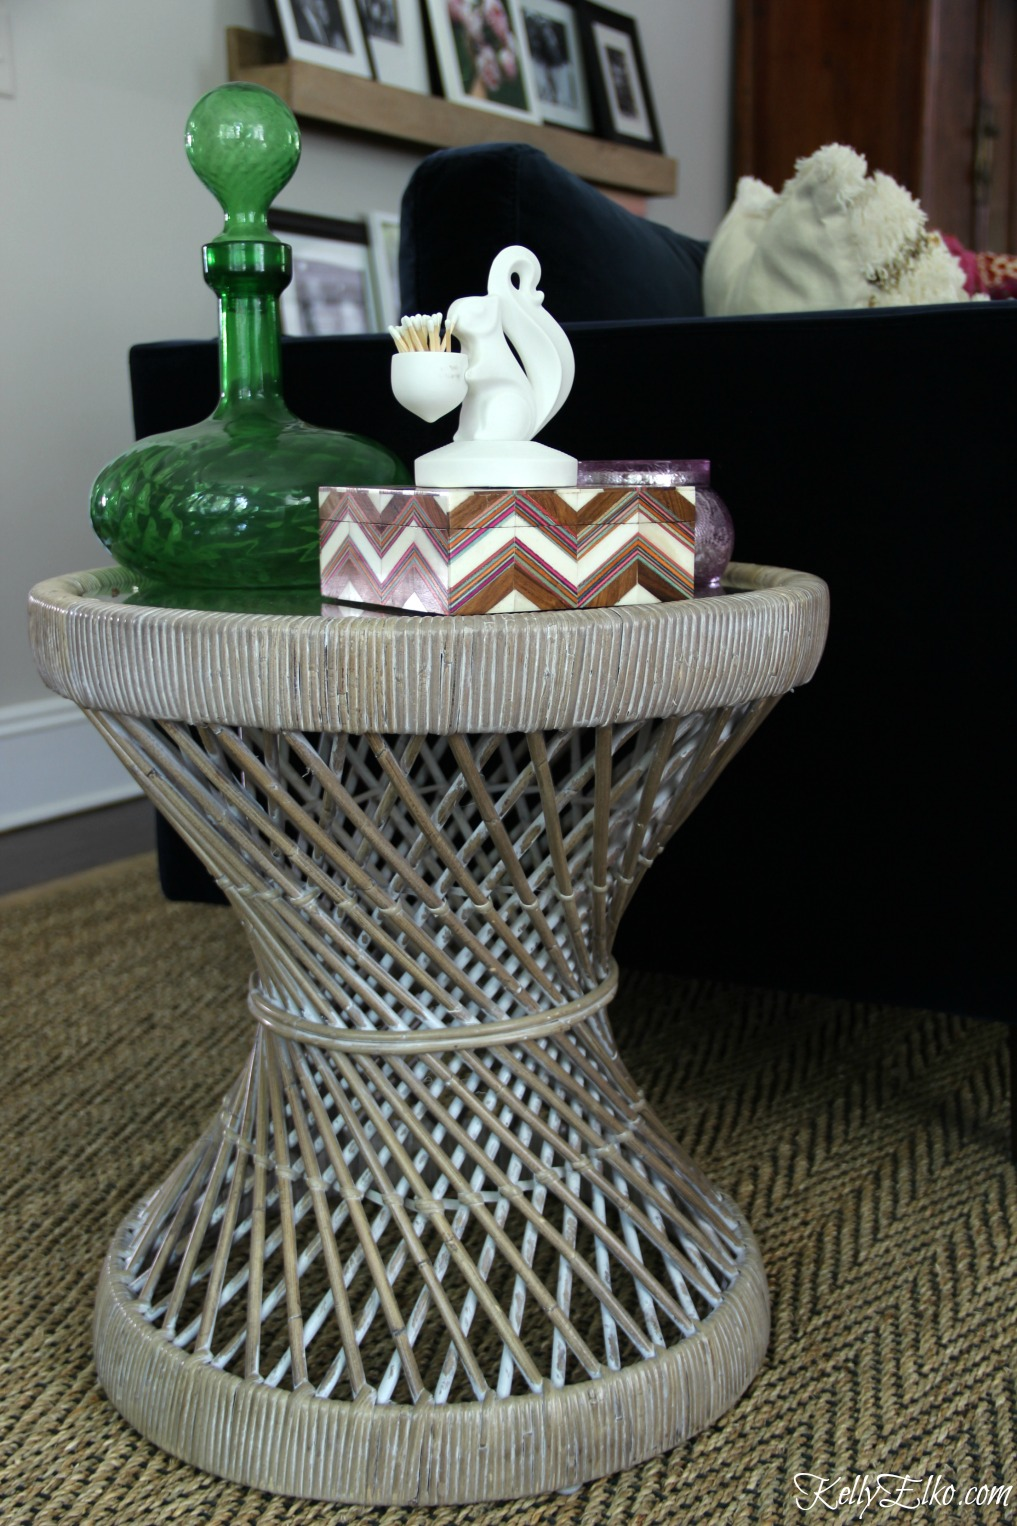 Love this round rattan side table kellyelko.com